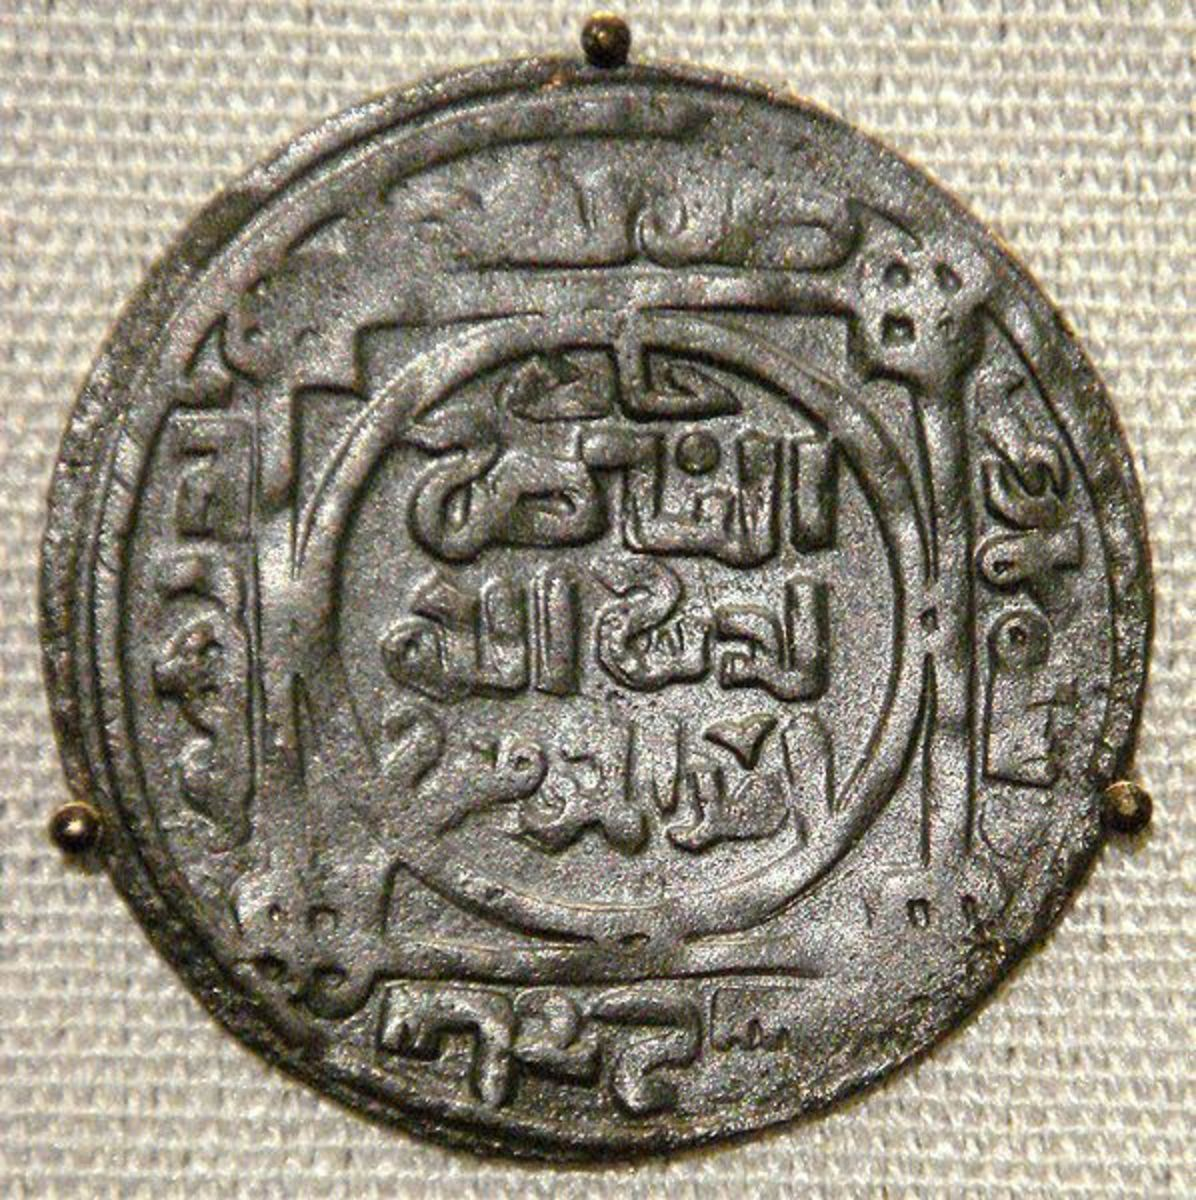 Mongol ~ Great Khan's coin ~ minted at Balk Afghanistan ~ AH 618 ~ AD 1221. 'I, the copyright holder of this work, release this work into the public domain.' ~See:http://en.wikipedia.org/wiki/File:Mongol_Great_Khans_coin_minted_at_Balk_Afghanistan_AH